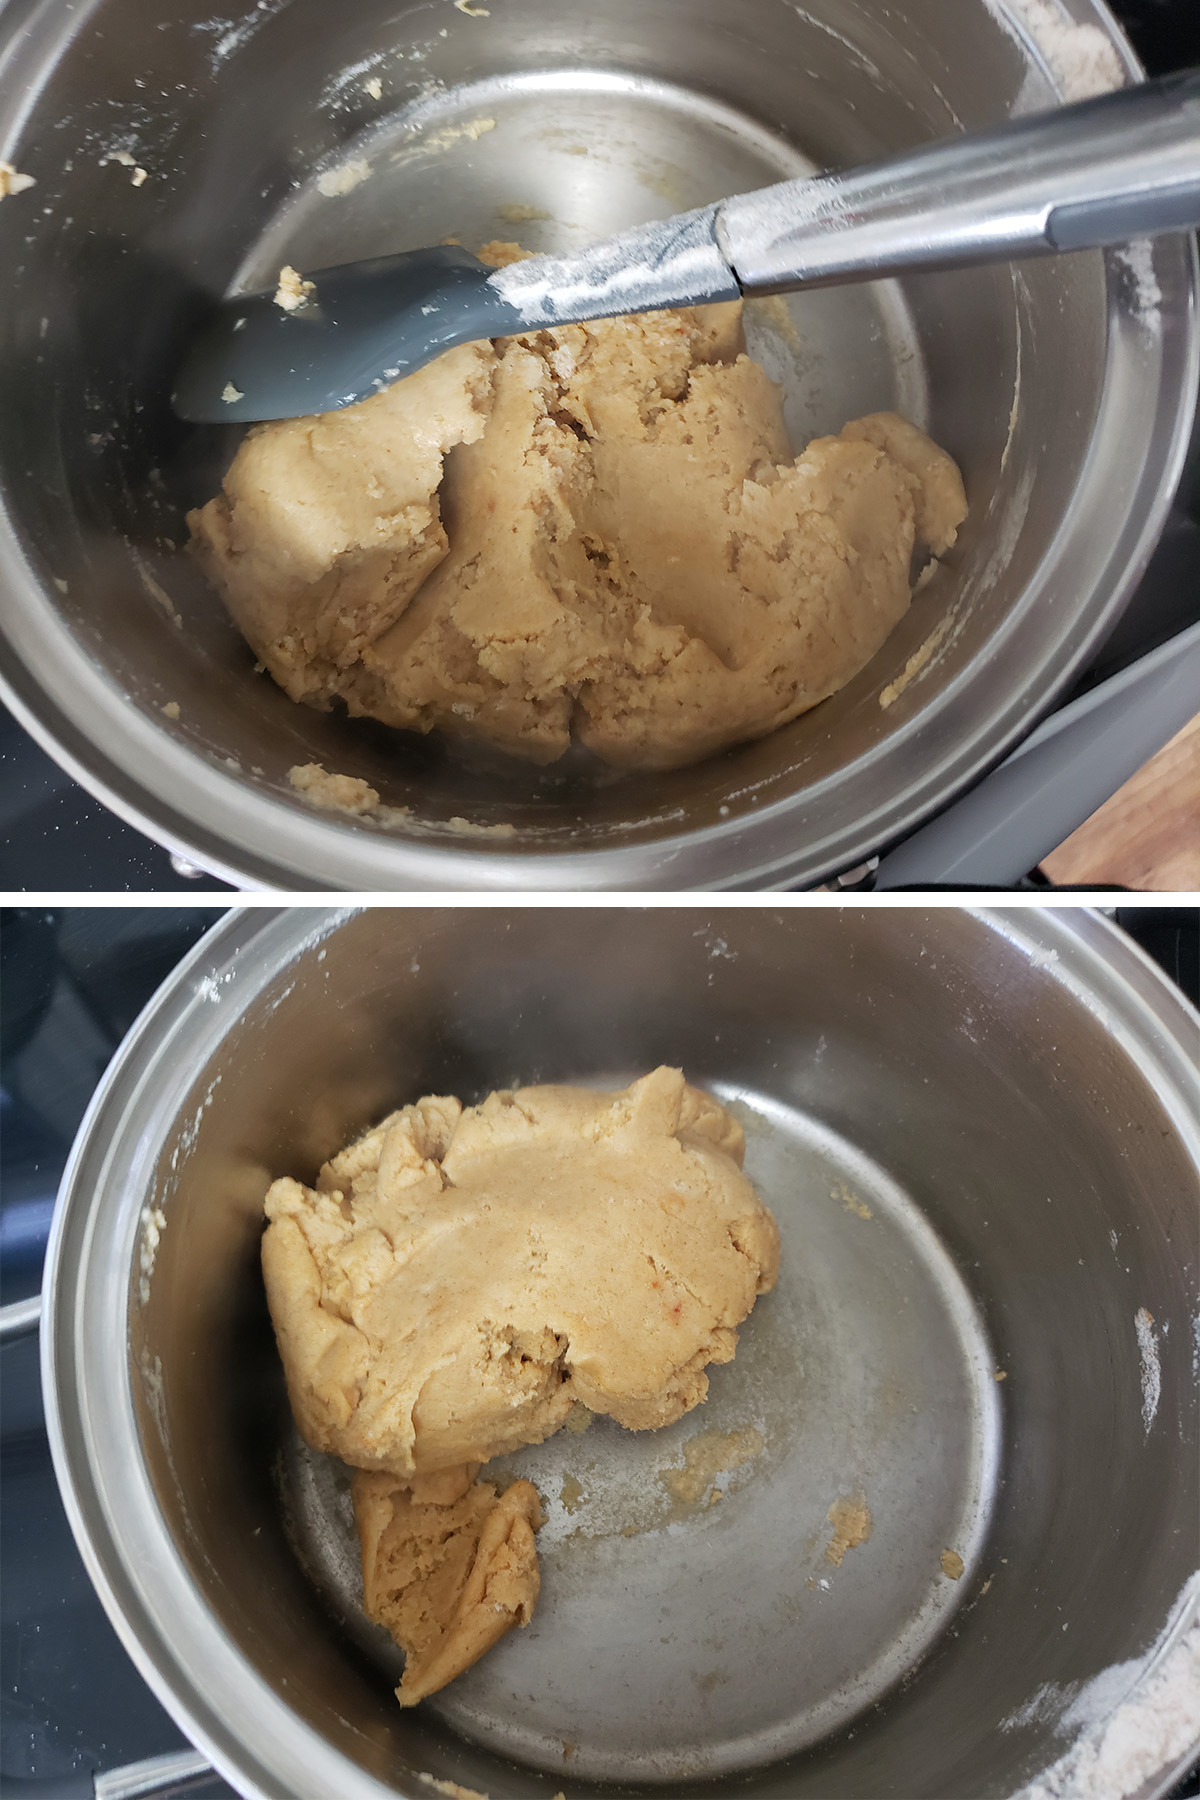 A two part compilation image showing the dough being stirred in the pot.